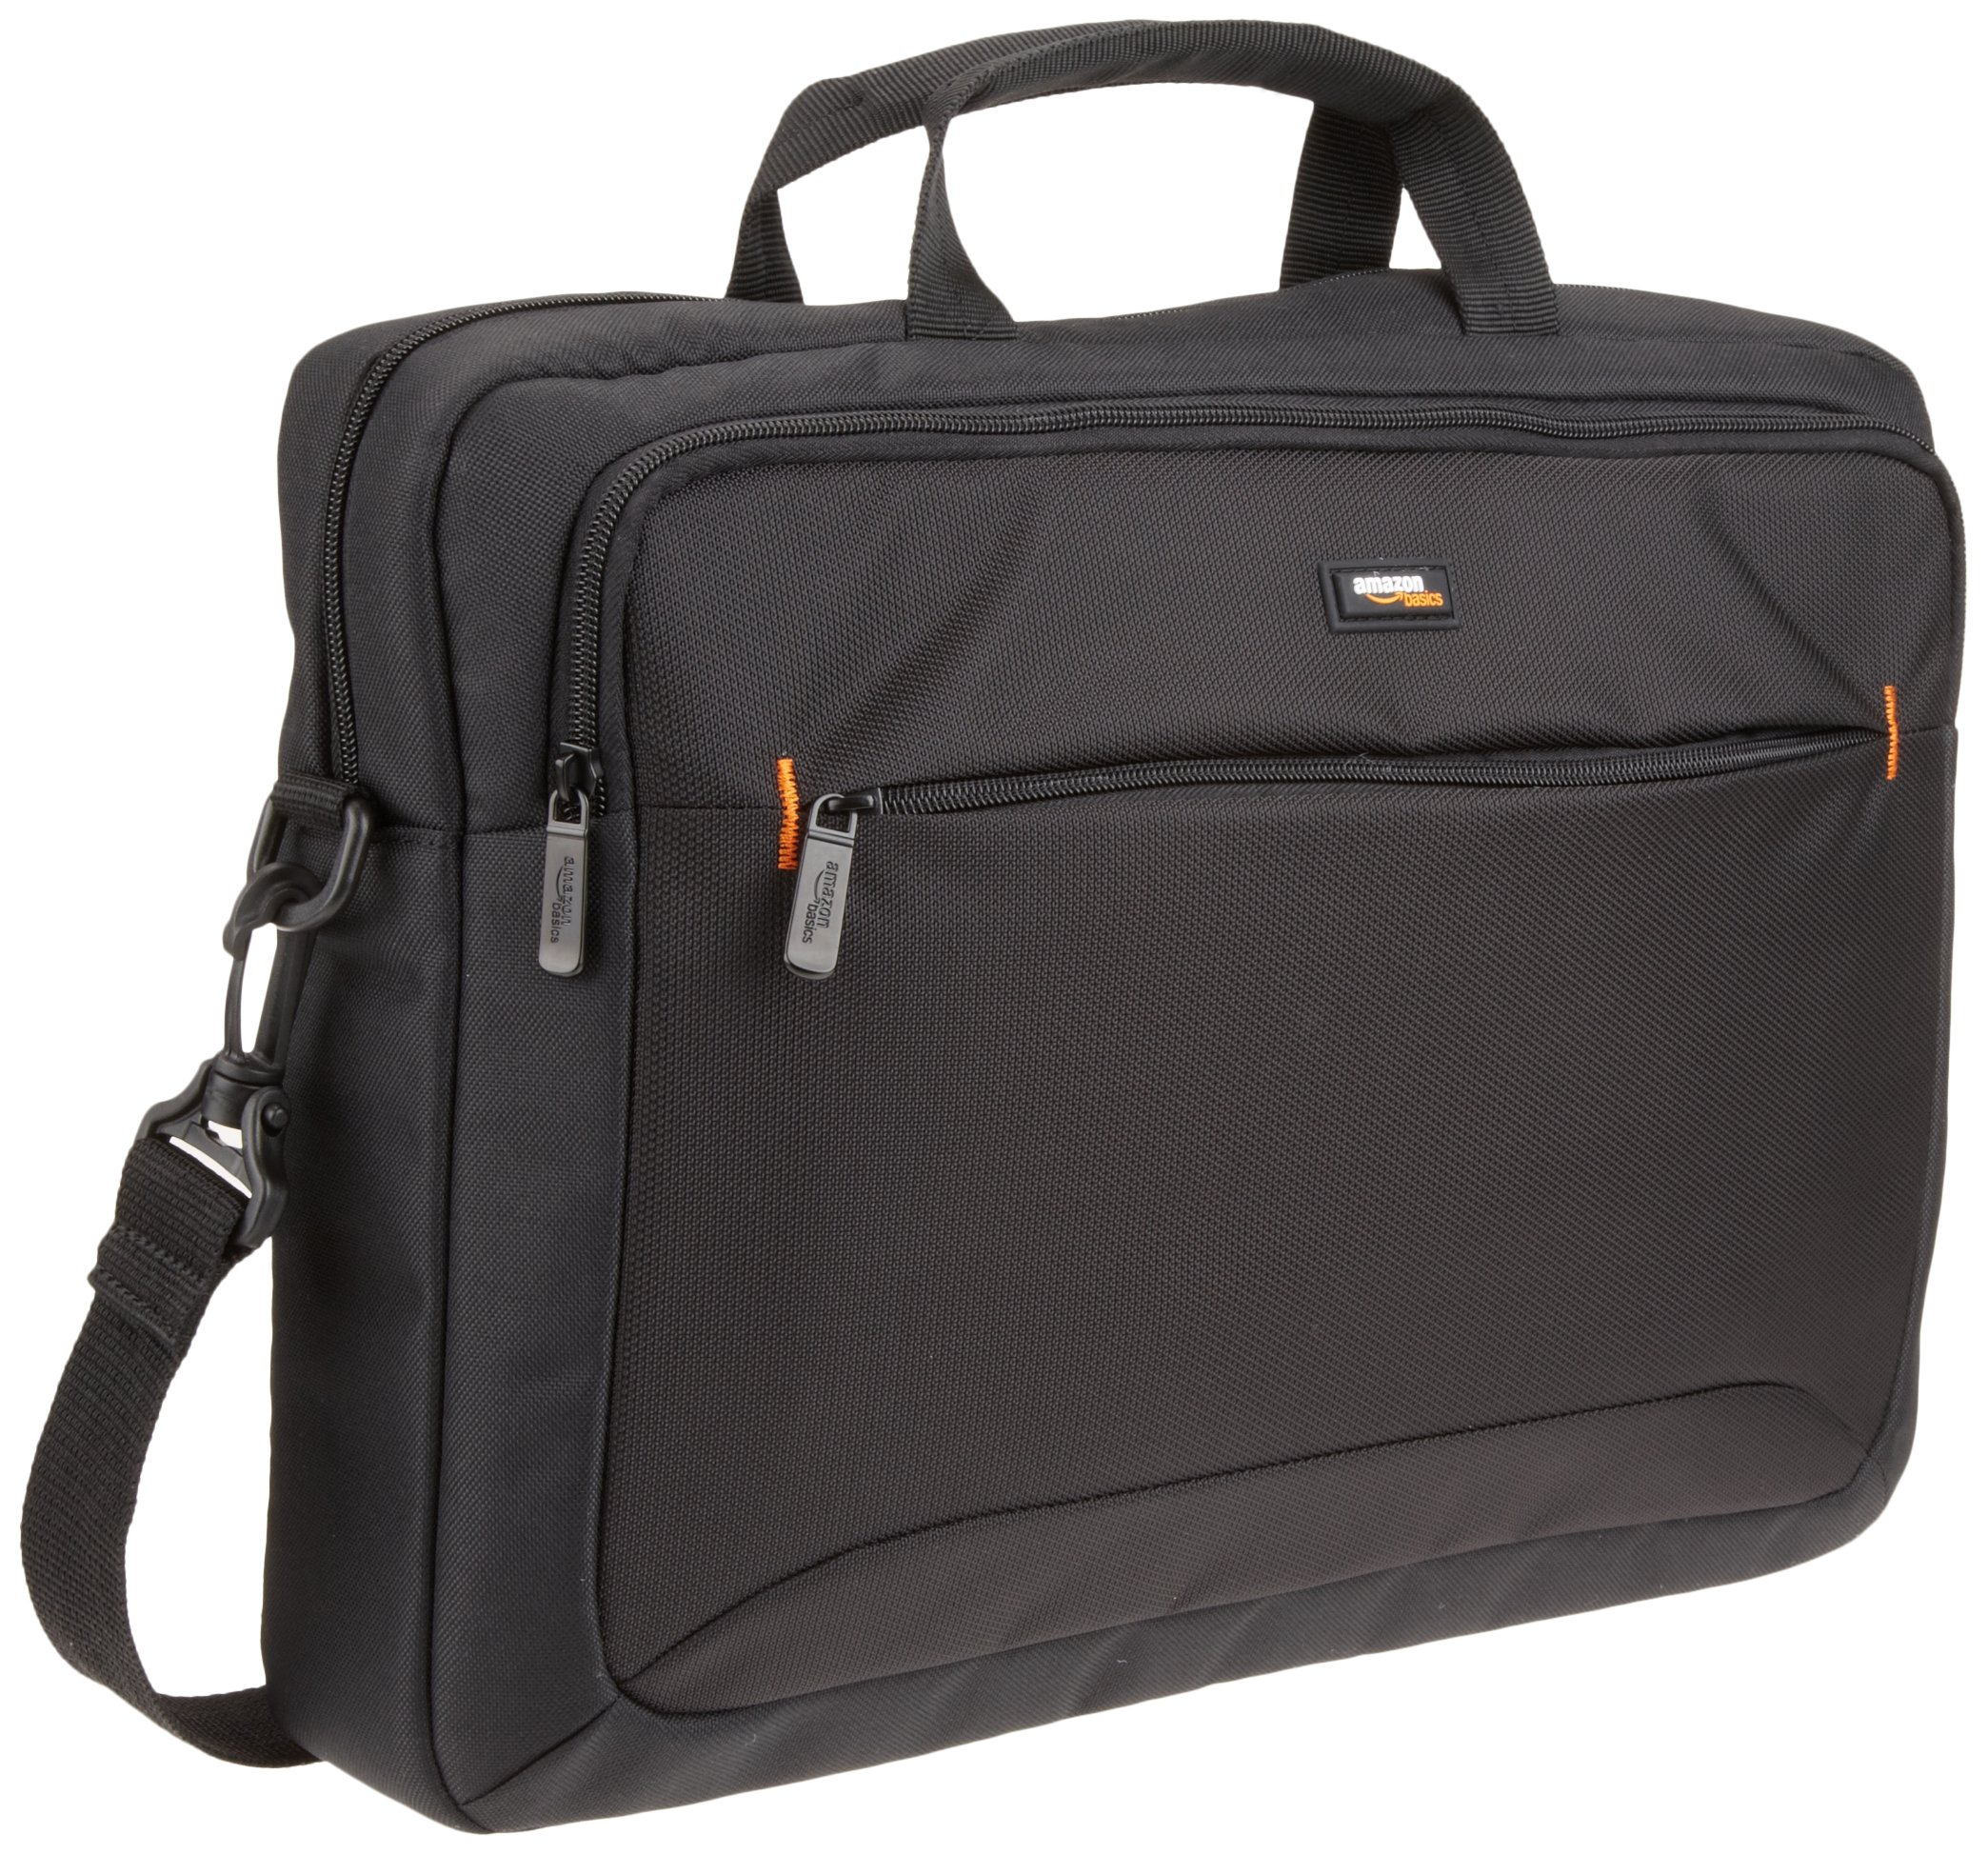 AmazonBasics 15.6-Inch Laptop Computer and Tablet Shoulder Bag Carrying Case by AmazonBasics